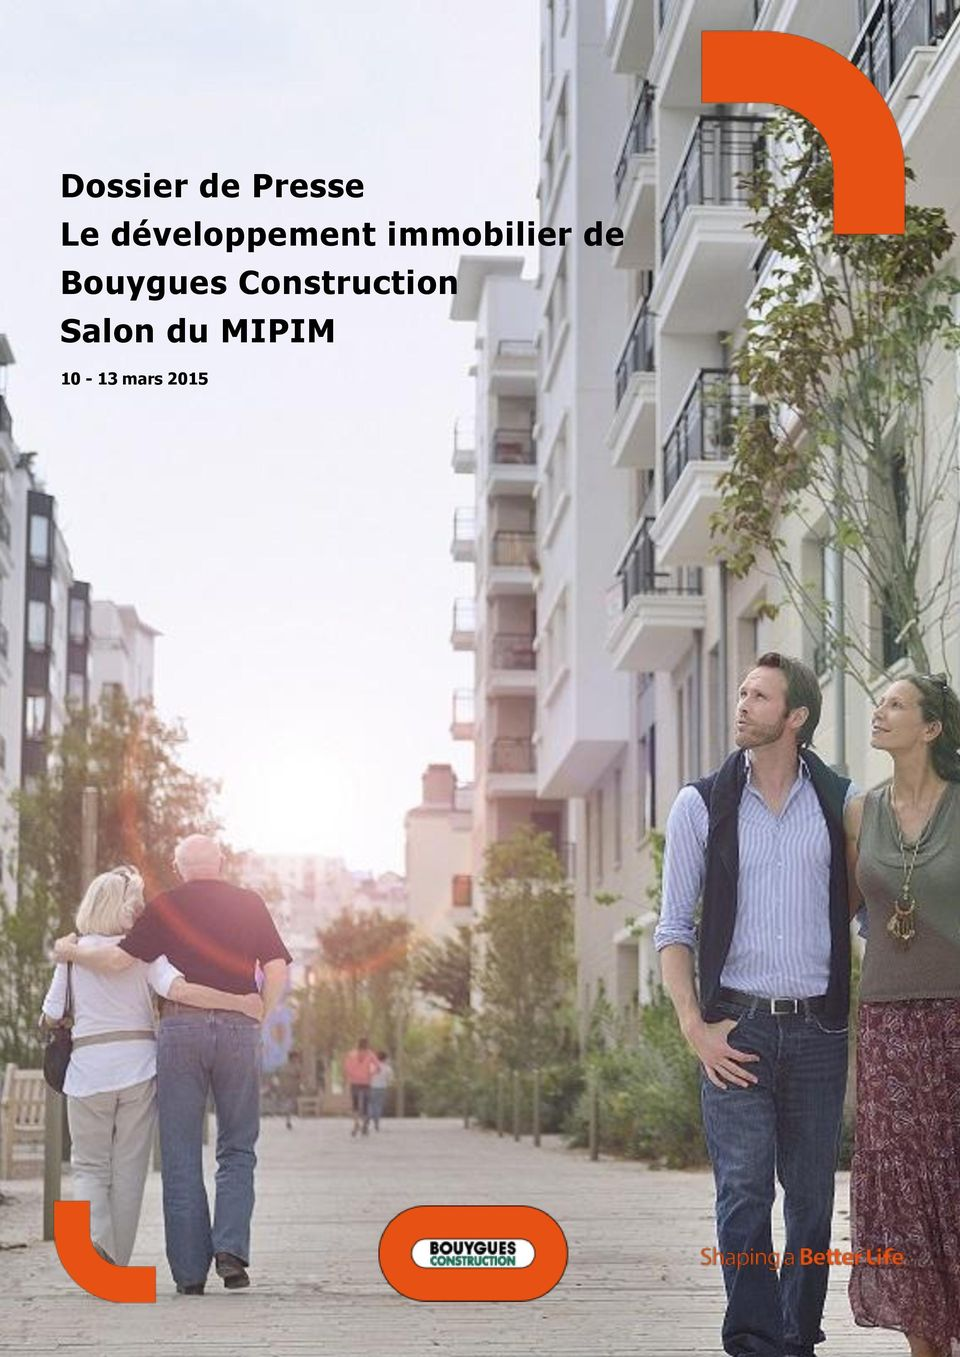 de Bouygues Construction